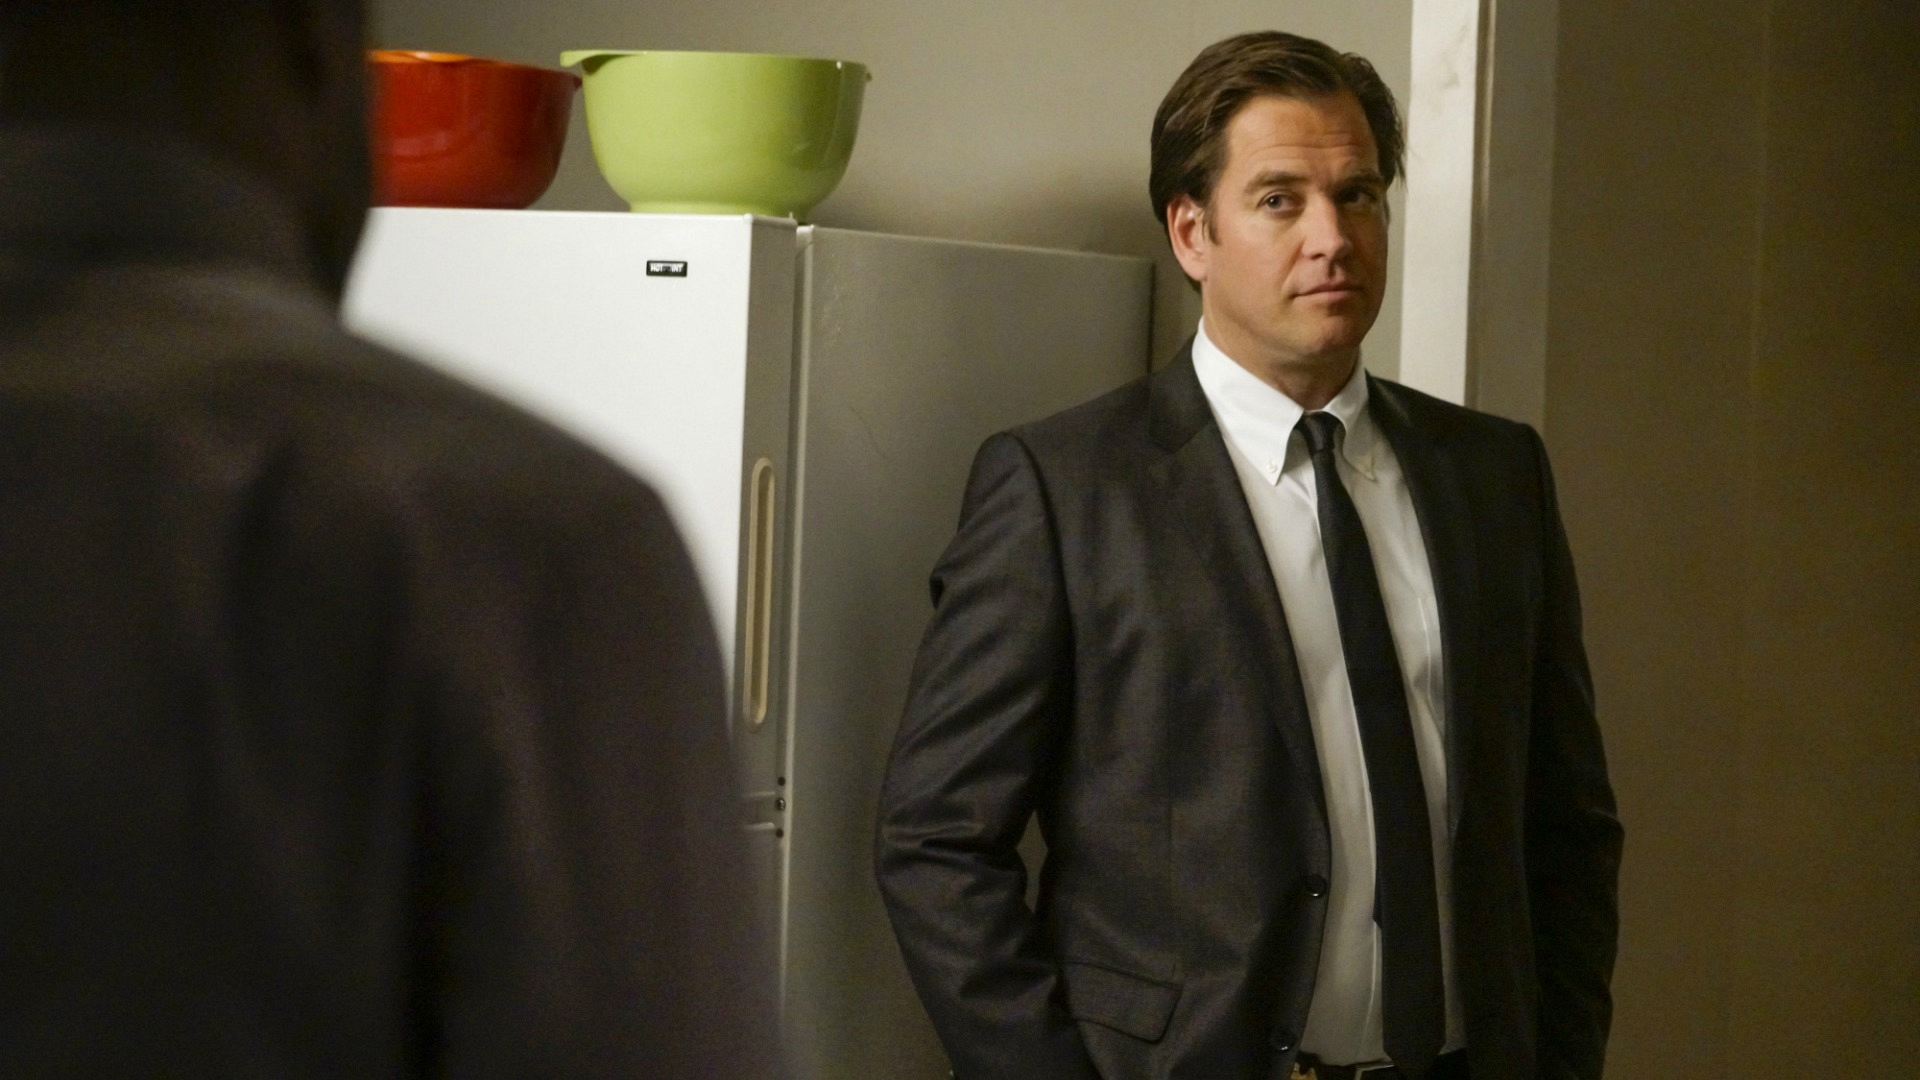 DiNozzo gets serious.